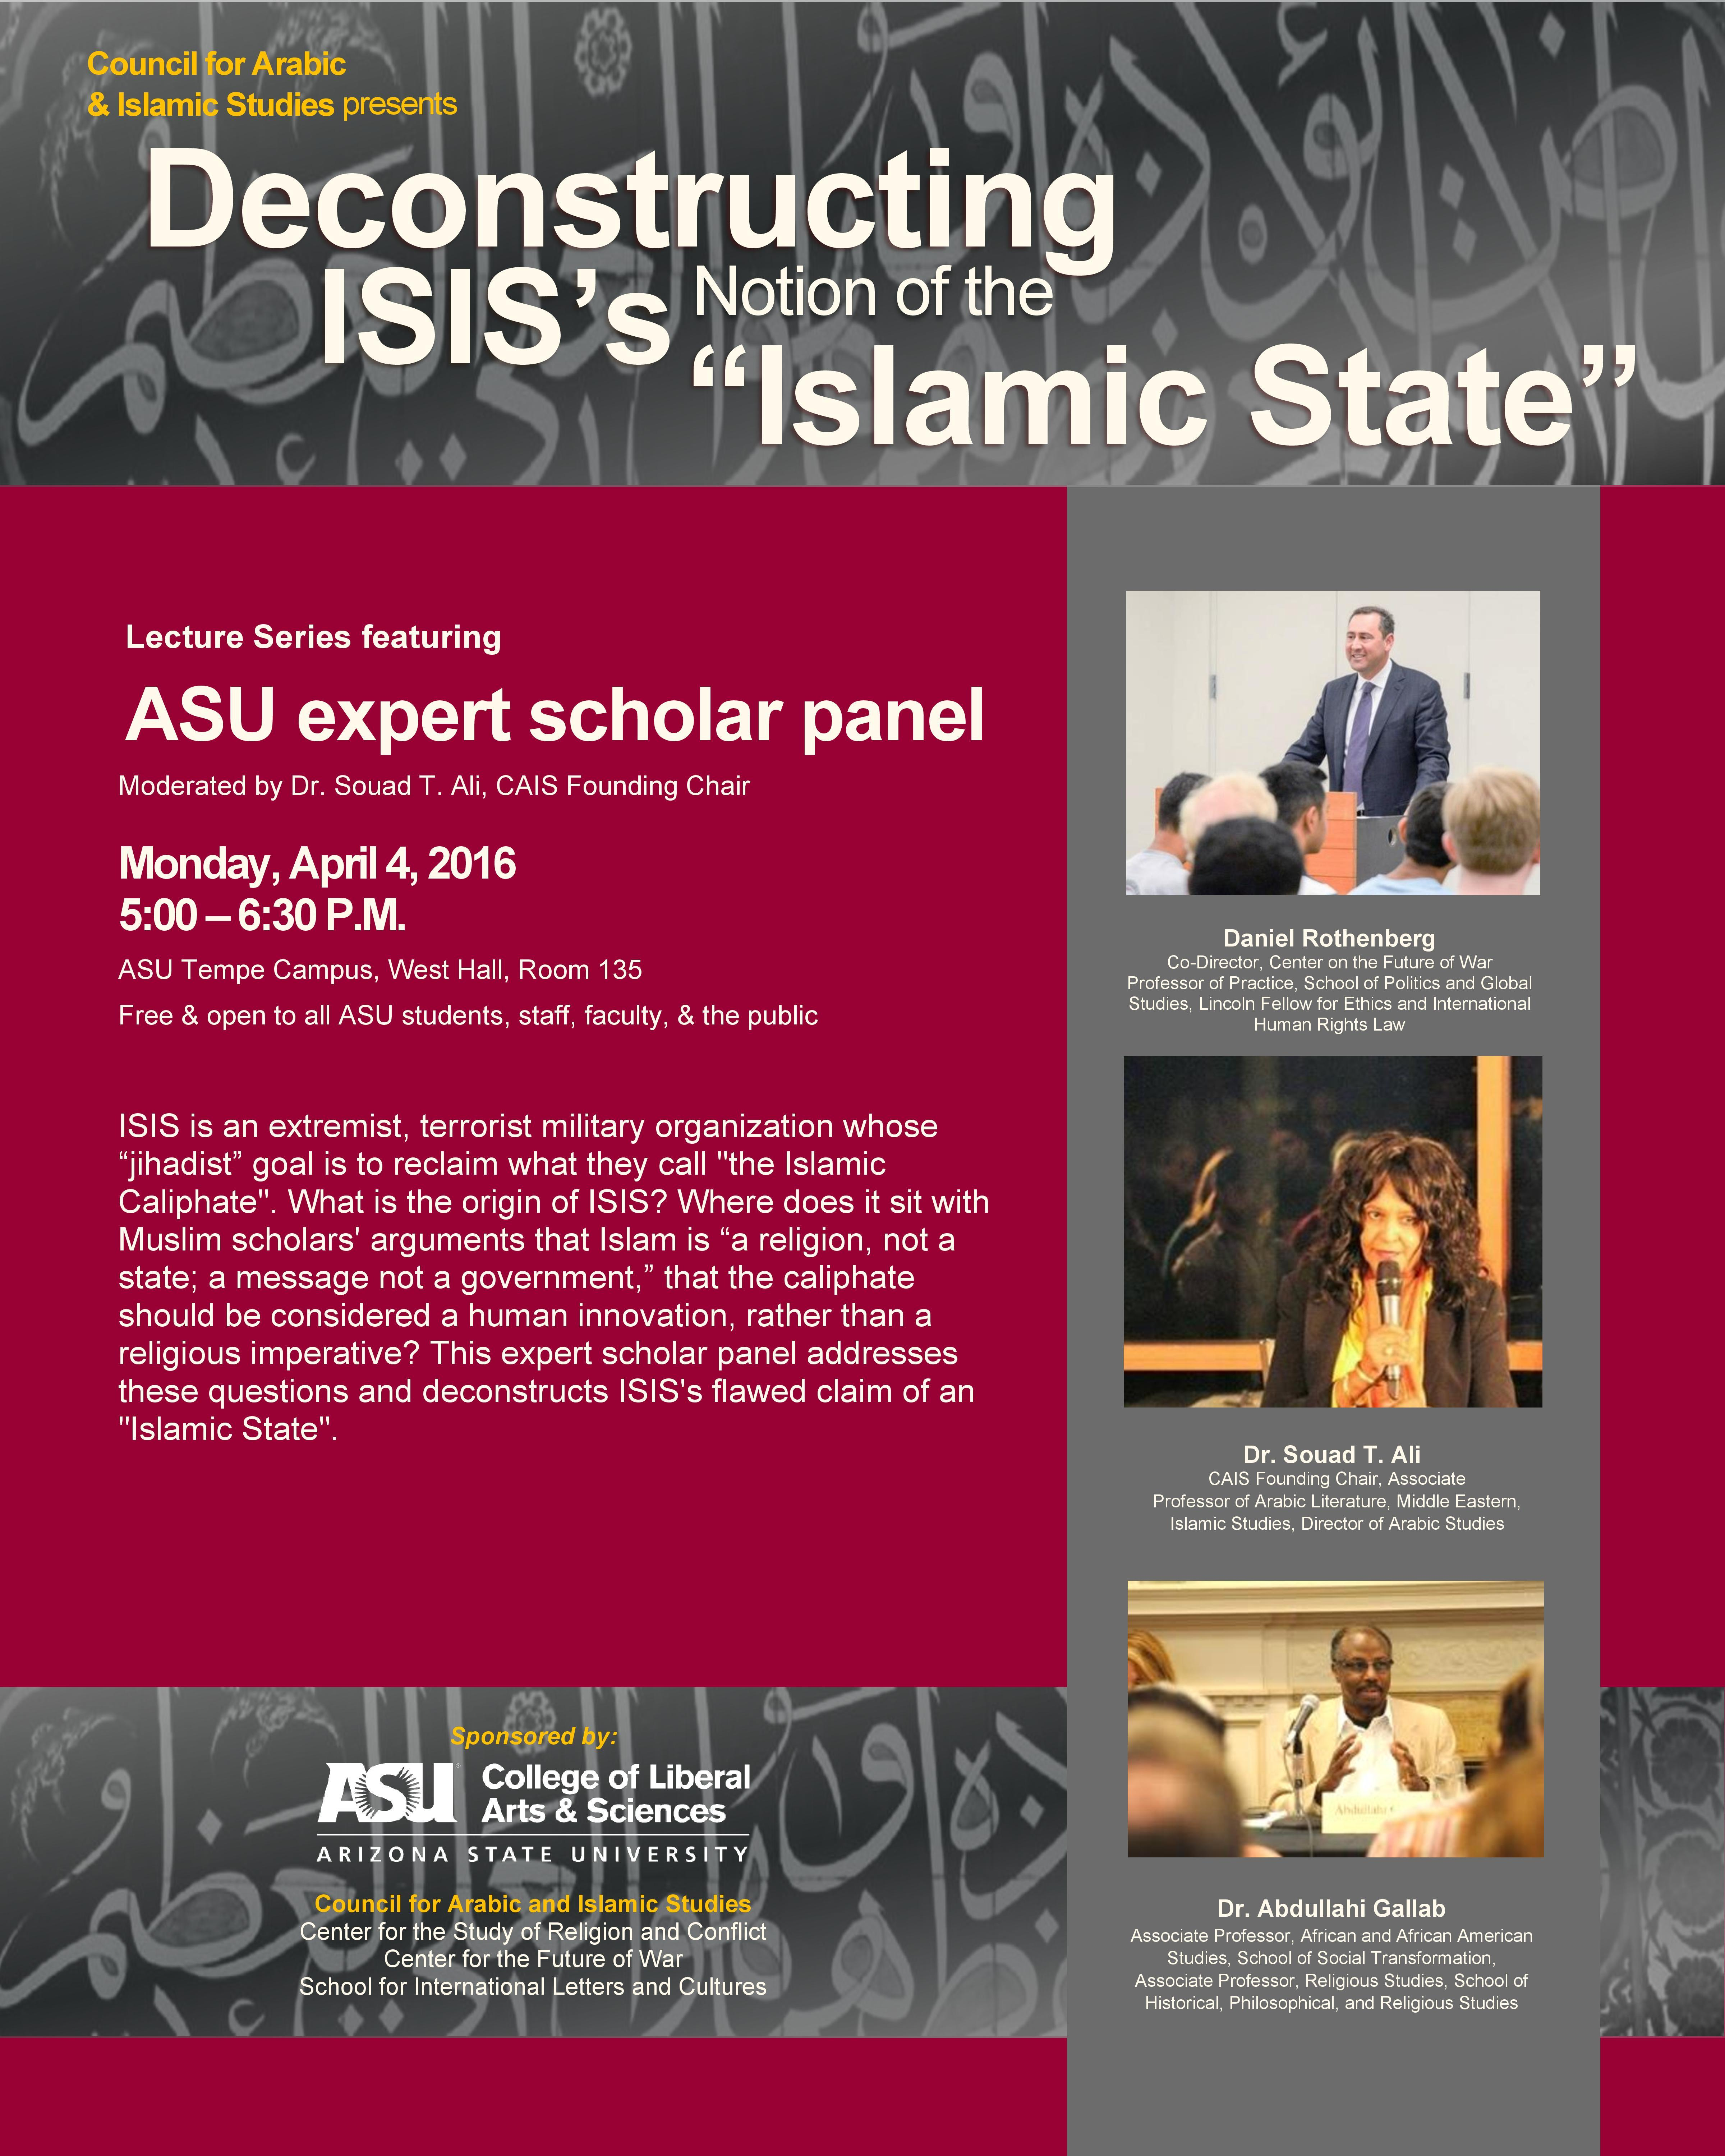 ASU Deconstructing ISIS Lecture -  Council for Arabic and Islamic Studies